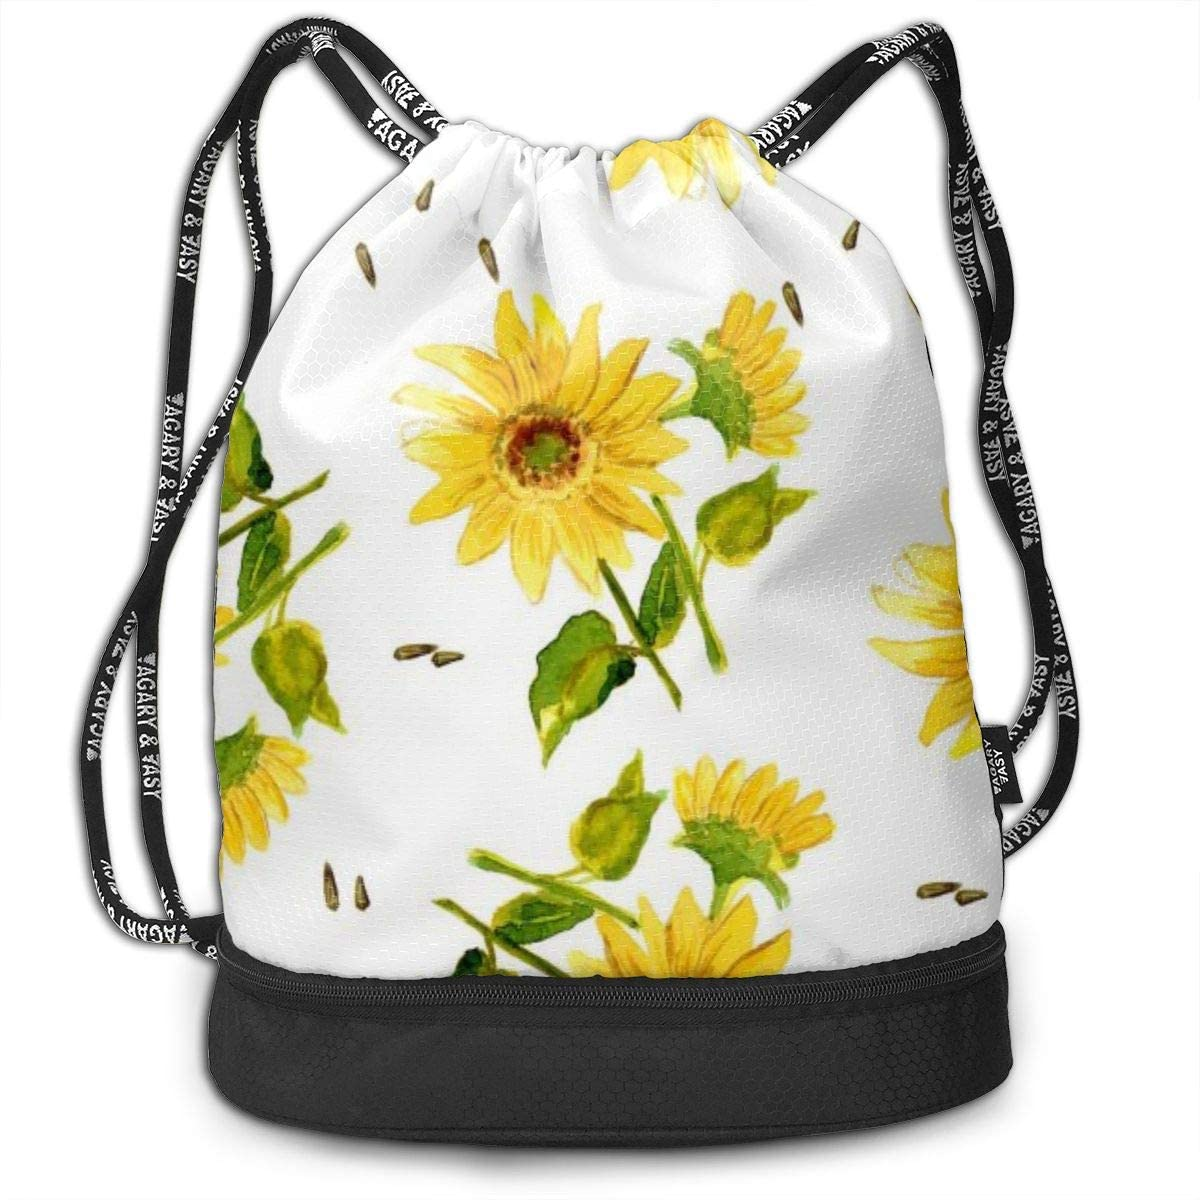 QSMX Durable Drawstring Backpack Nylon with Inside Pocket for Gym Sport Shopping Yoga Multi-Purpose for Men and Women Unisex Beautiful Cute Sunflower